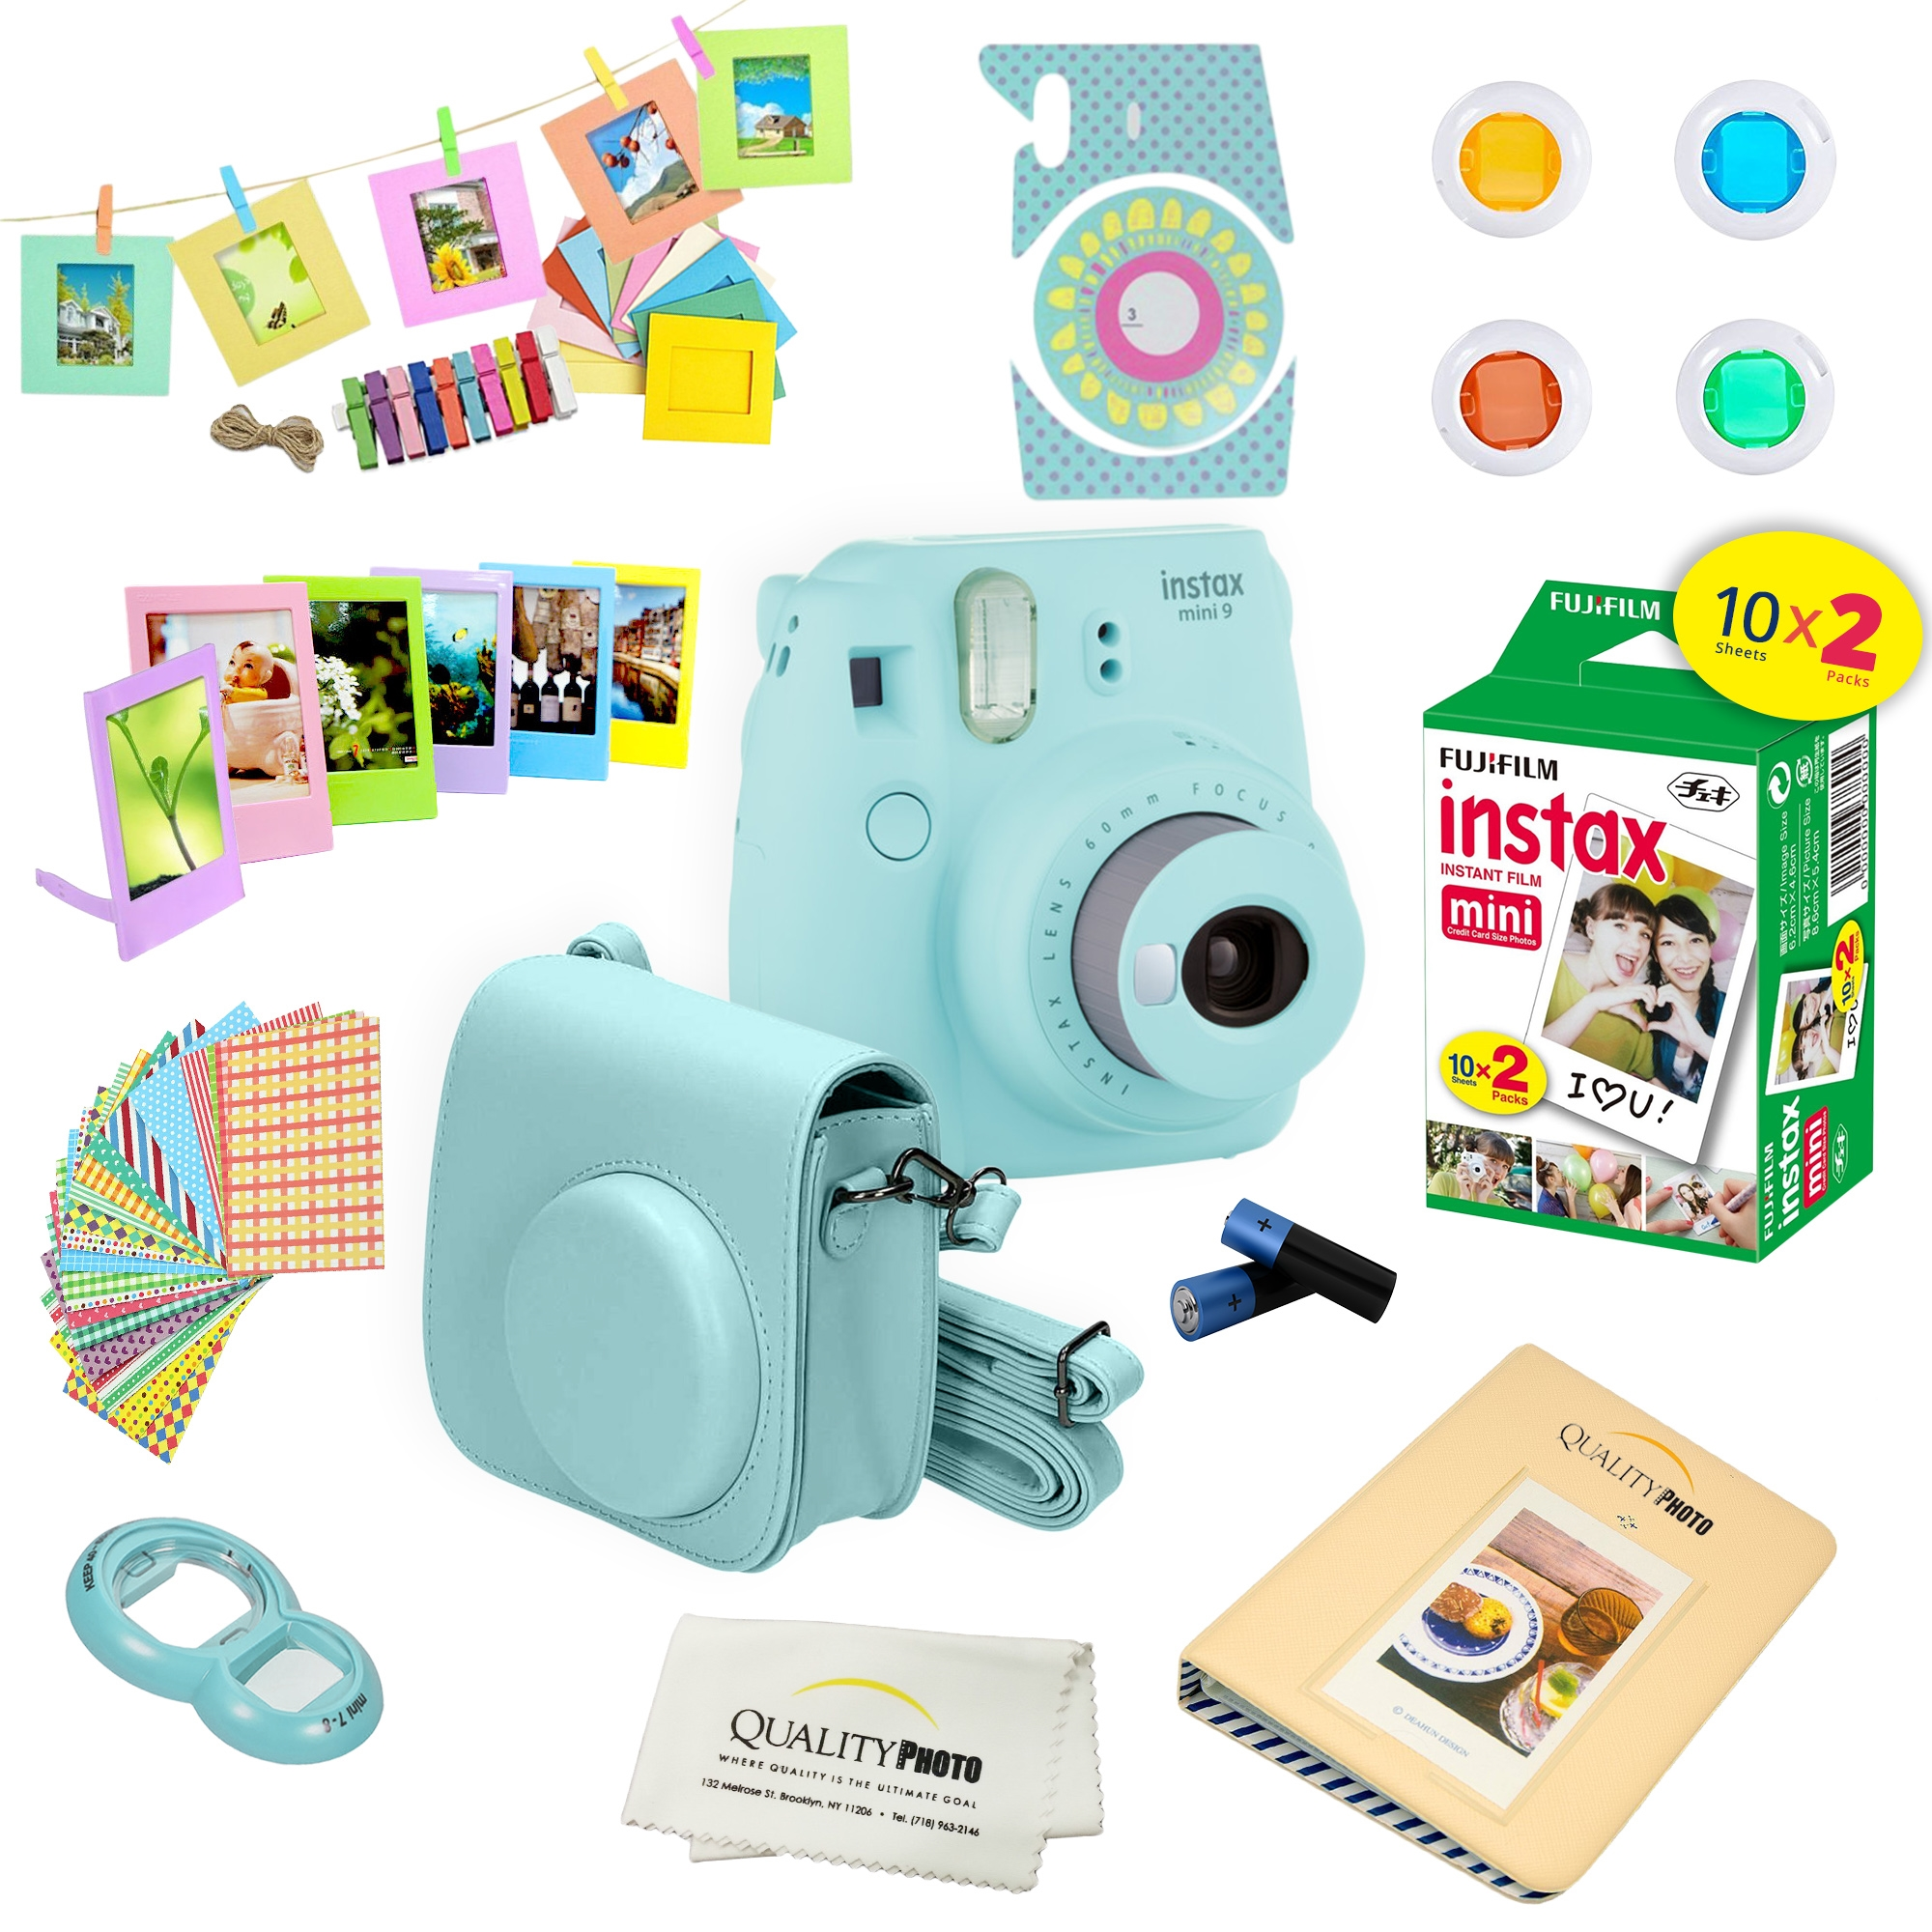 Fujifilm Instax Mini 9 Instant Film Camera with Deluxe Accessories Bundle